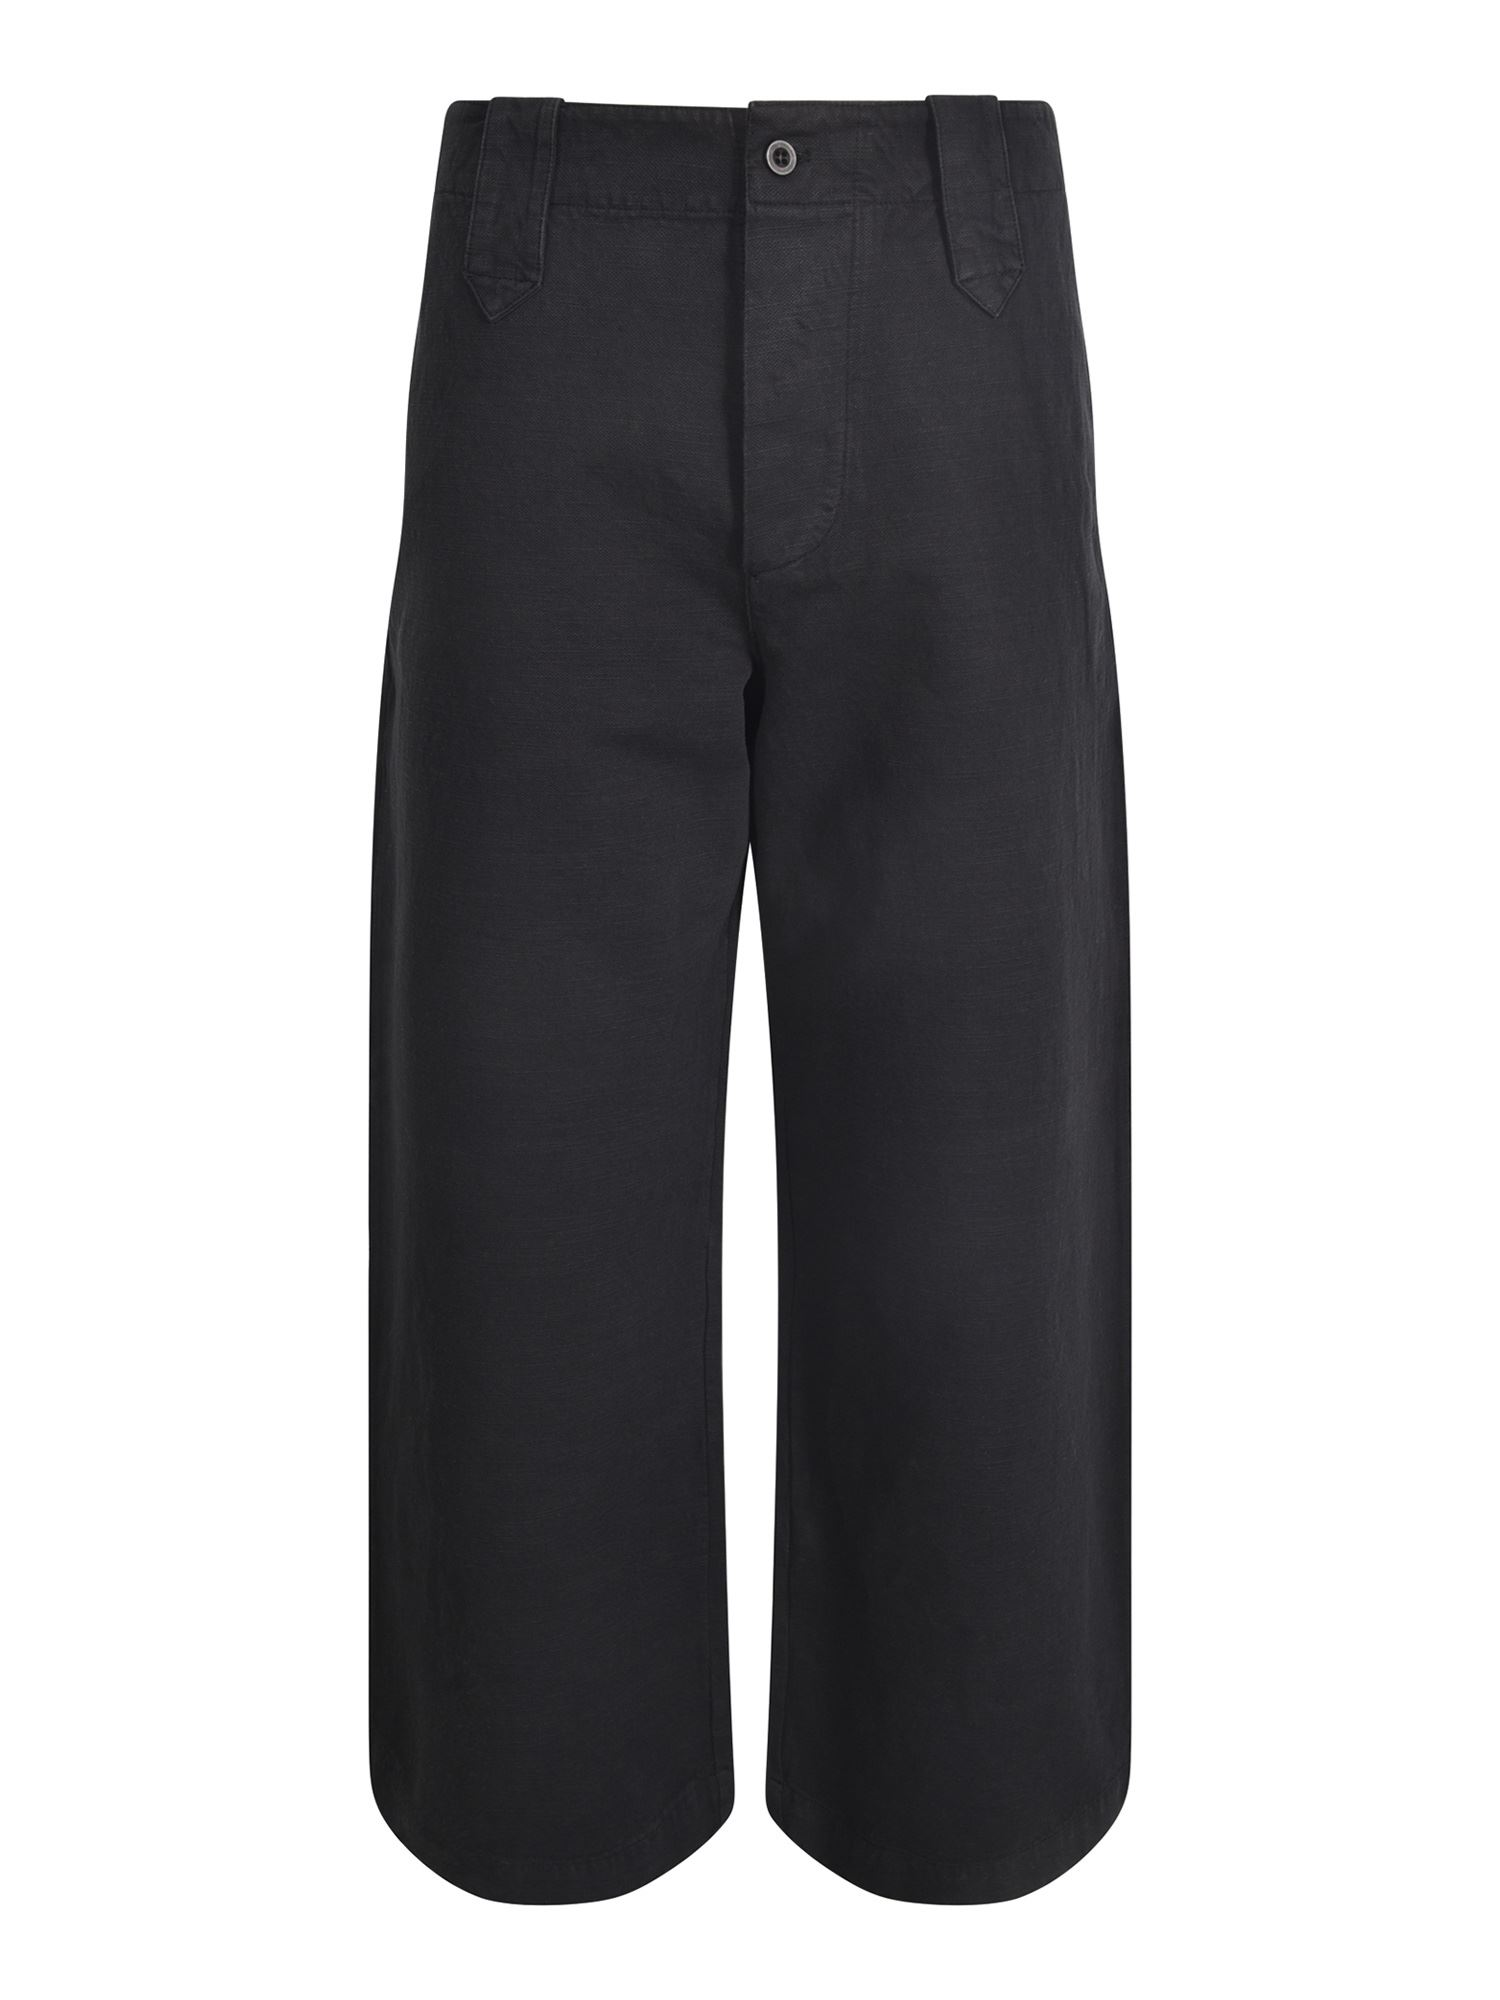 Labo.art JORGE TROUSERS IN BLACK